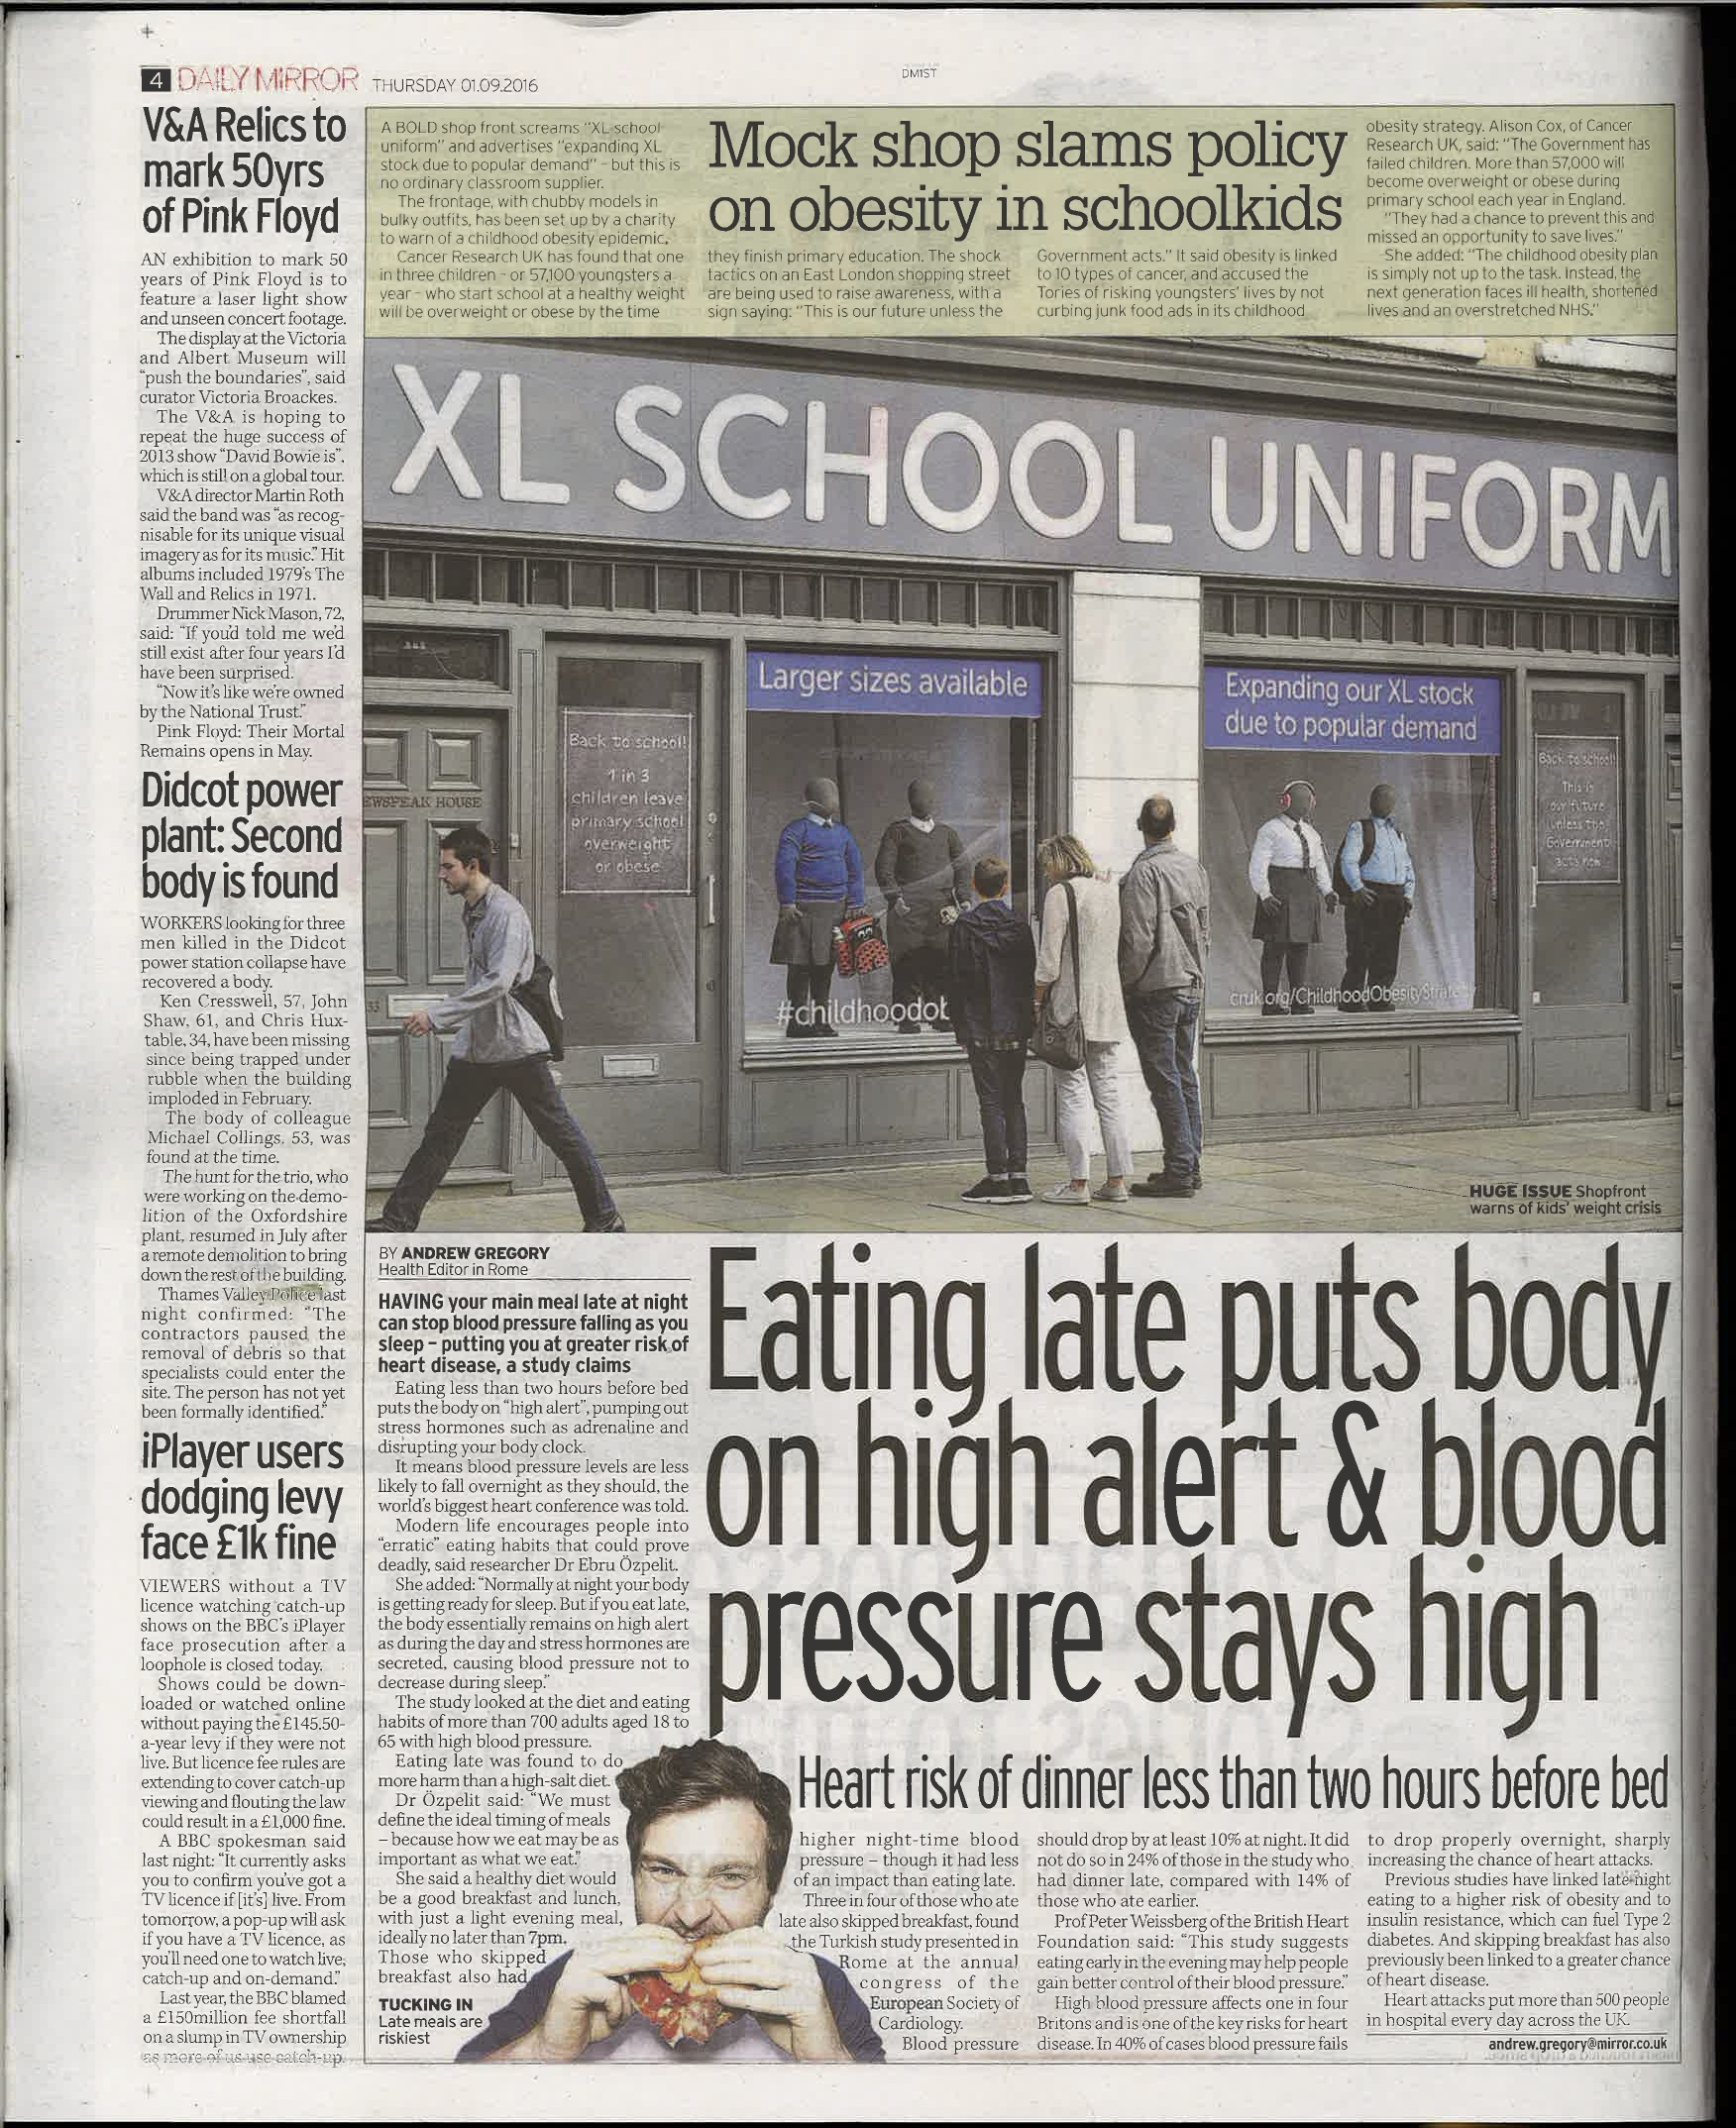 An article in the Daily Mirror including a photograph of a window display containing obese mannequins in tight school uniform